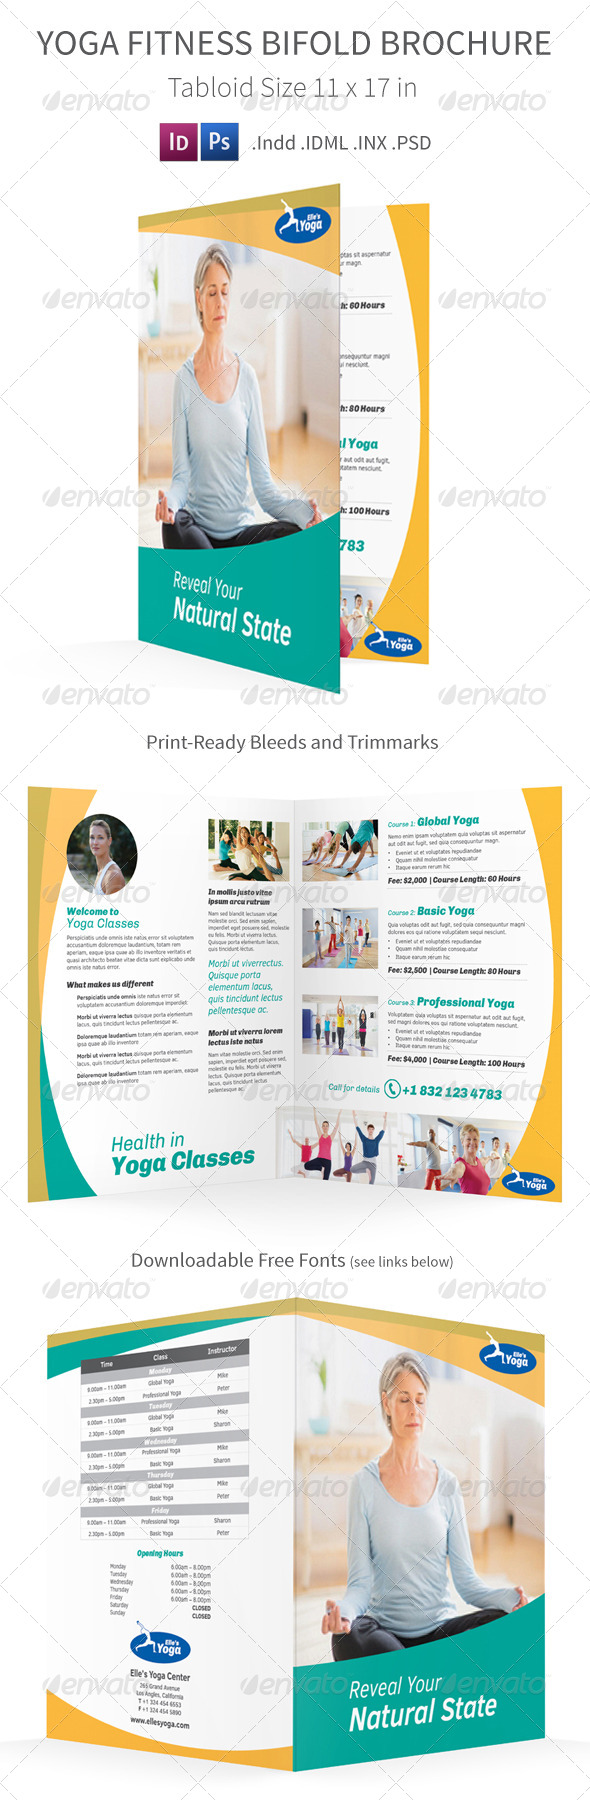 GraphicRiver Yoga Fitness Bifold Halffold Brochure 7857595